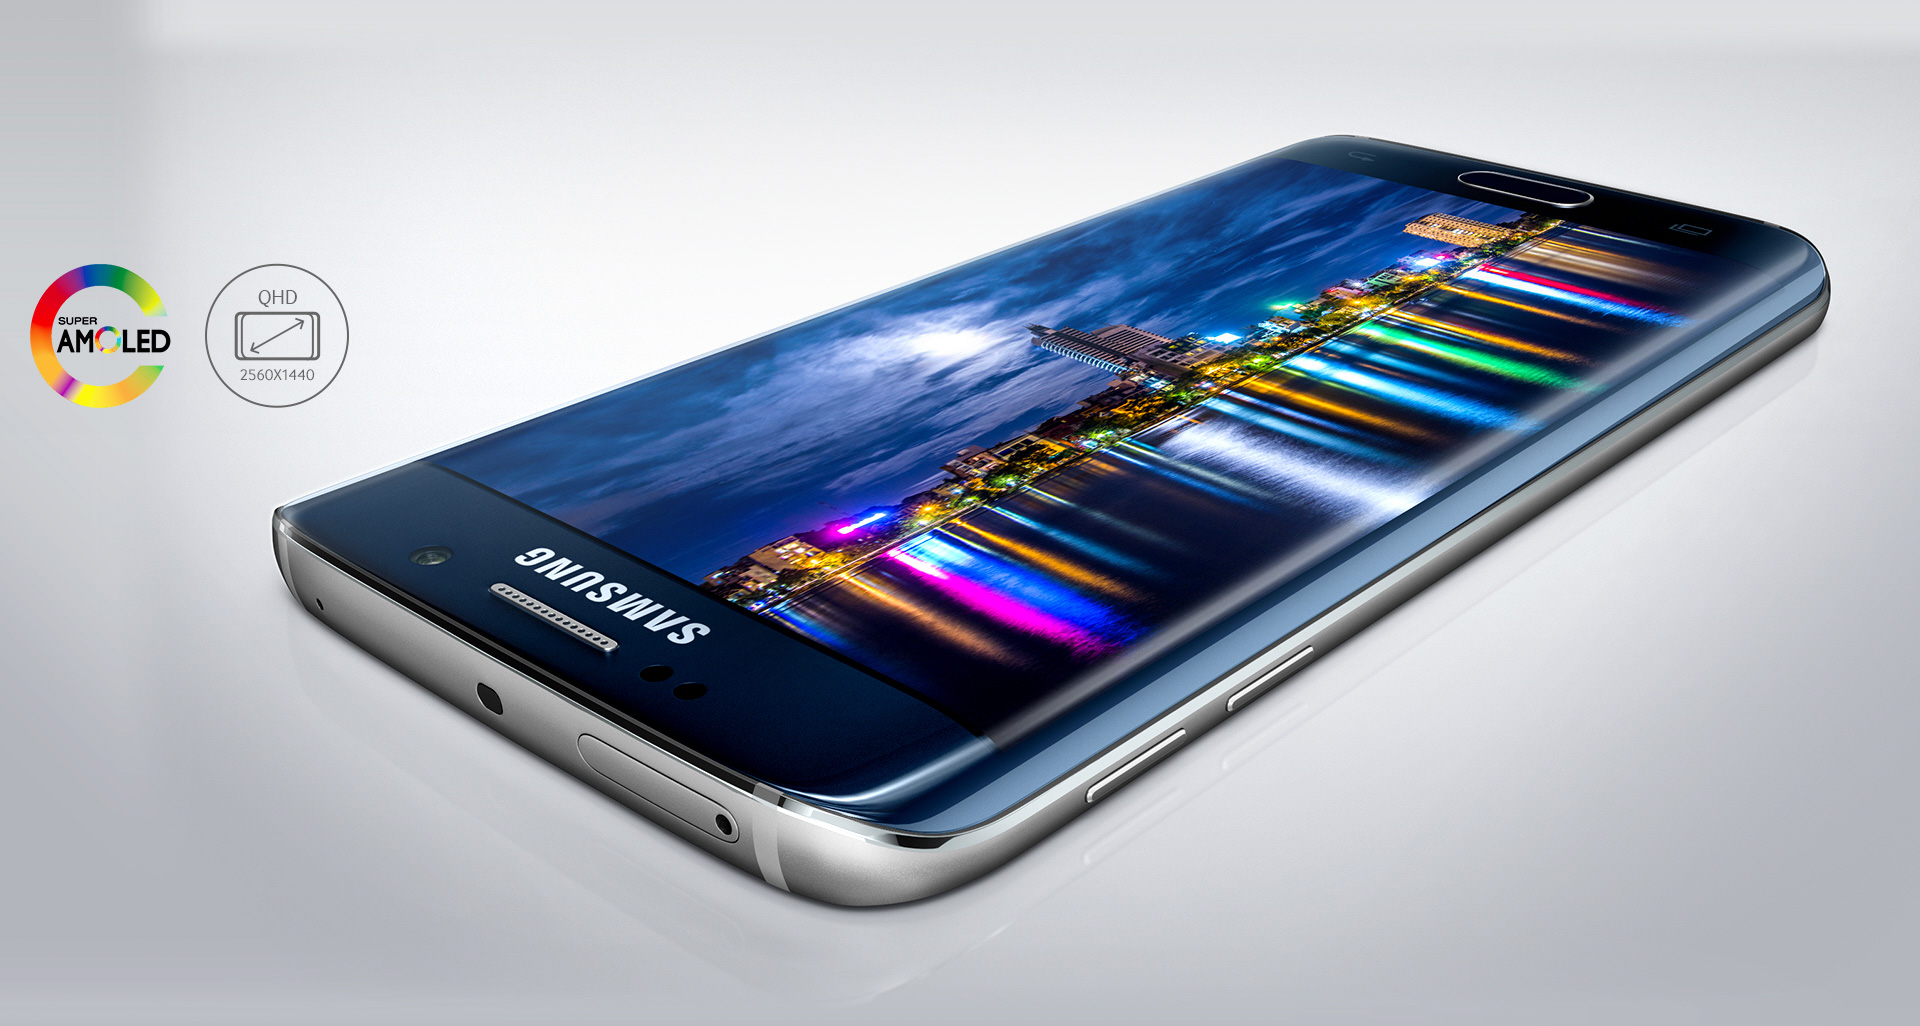 samsung galaxy s6 edge plus to feature 4 gb of ram and exynos 7420 news. Black Bedroom Furniture Sets. Home Design Ideas